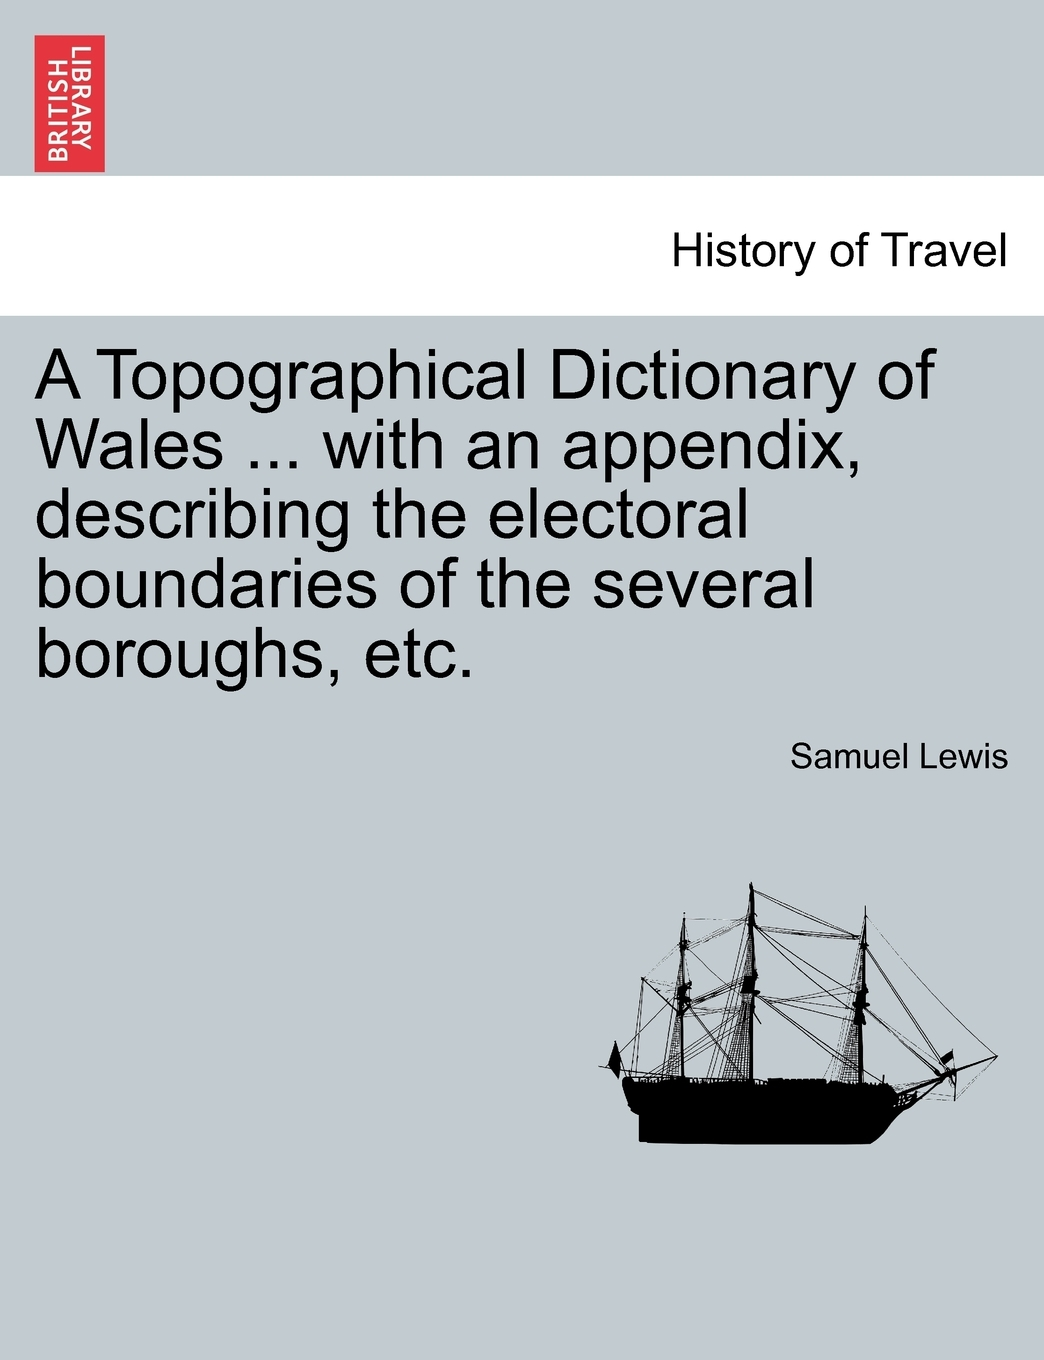 A Topographical Dictionary of Wales with an Appendix